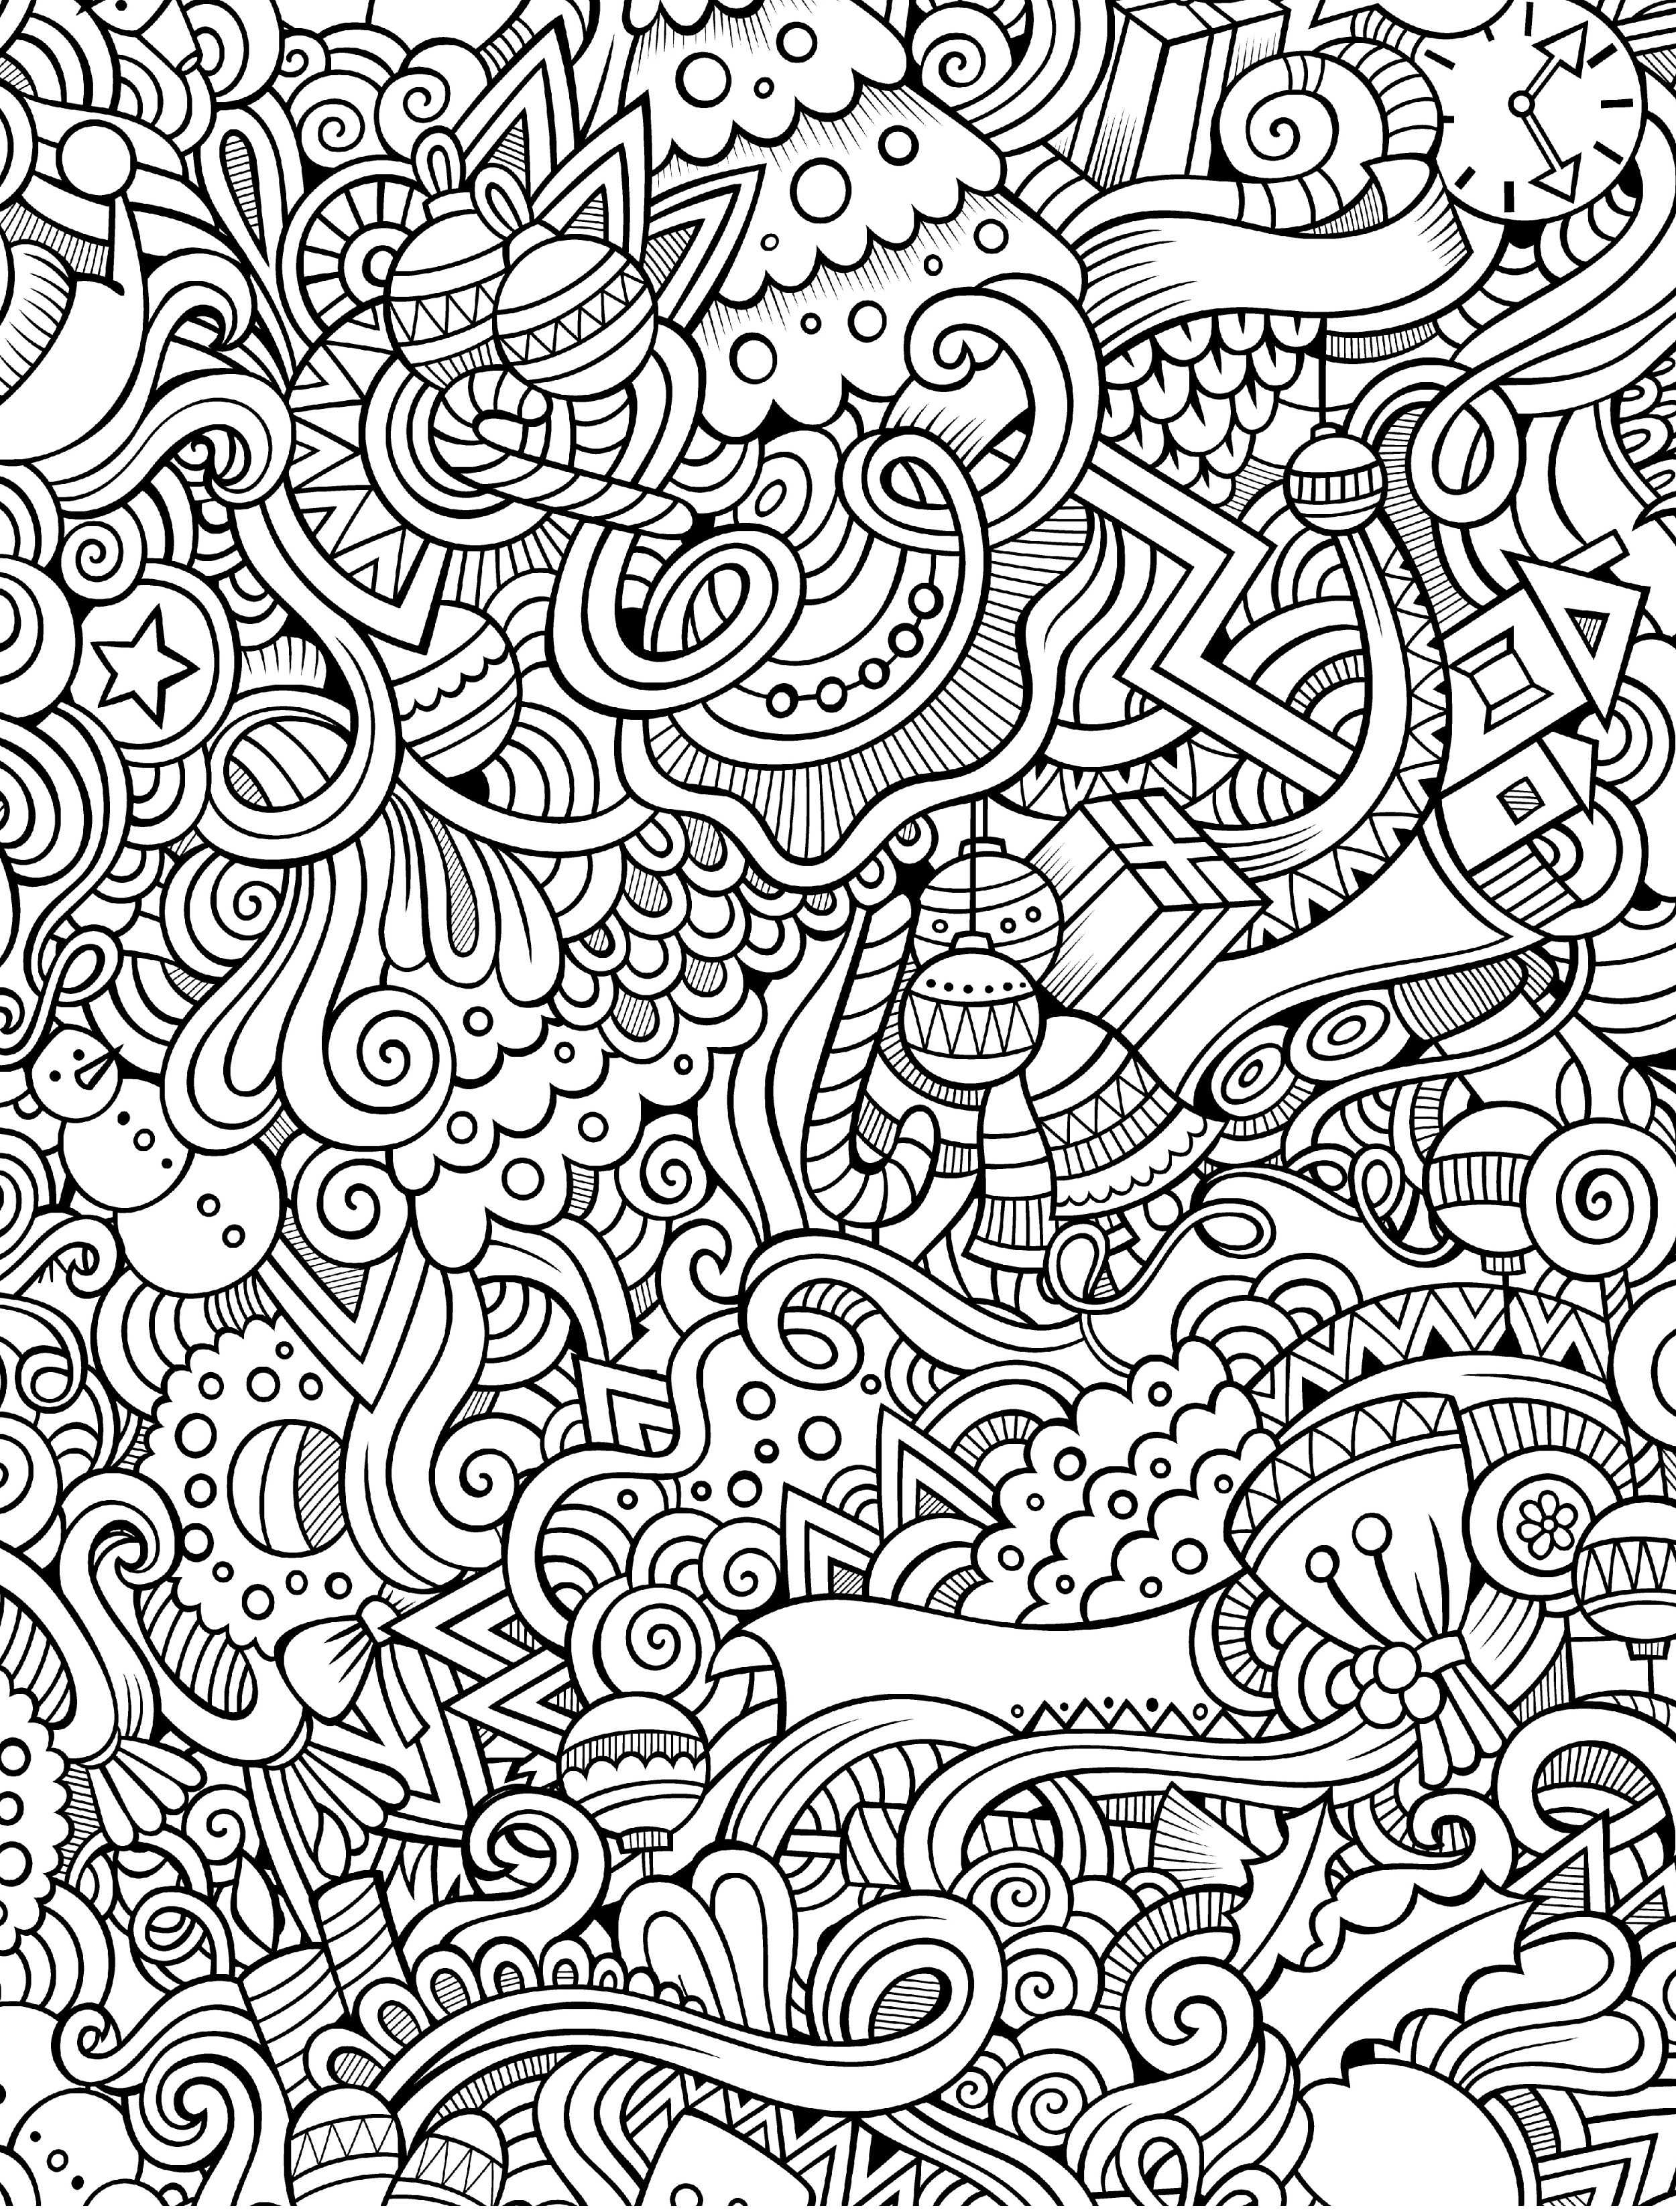 Best ideas about Free Printable Coloring Sheets For Adults . Save or Pin 10 Free Printable Holiday Adult Coloring Pages Now.